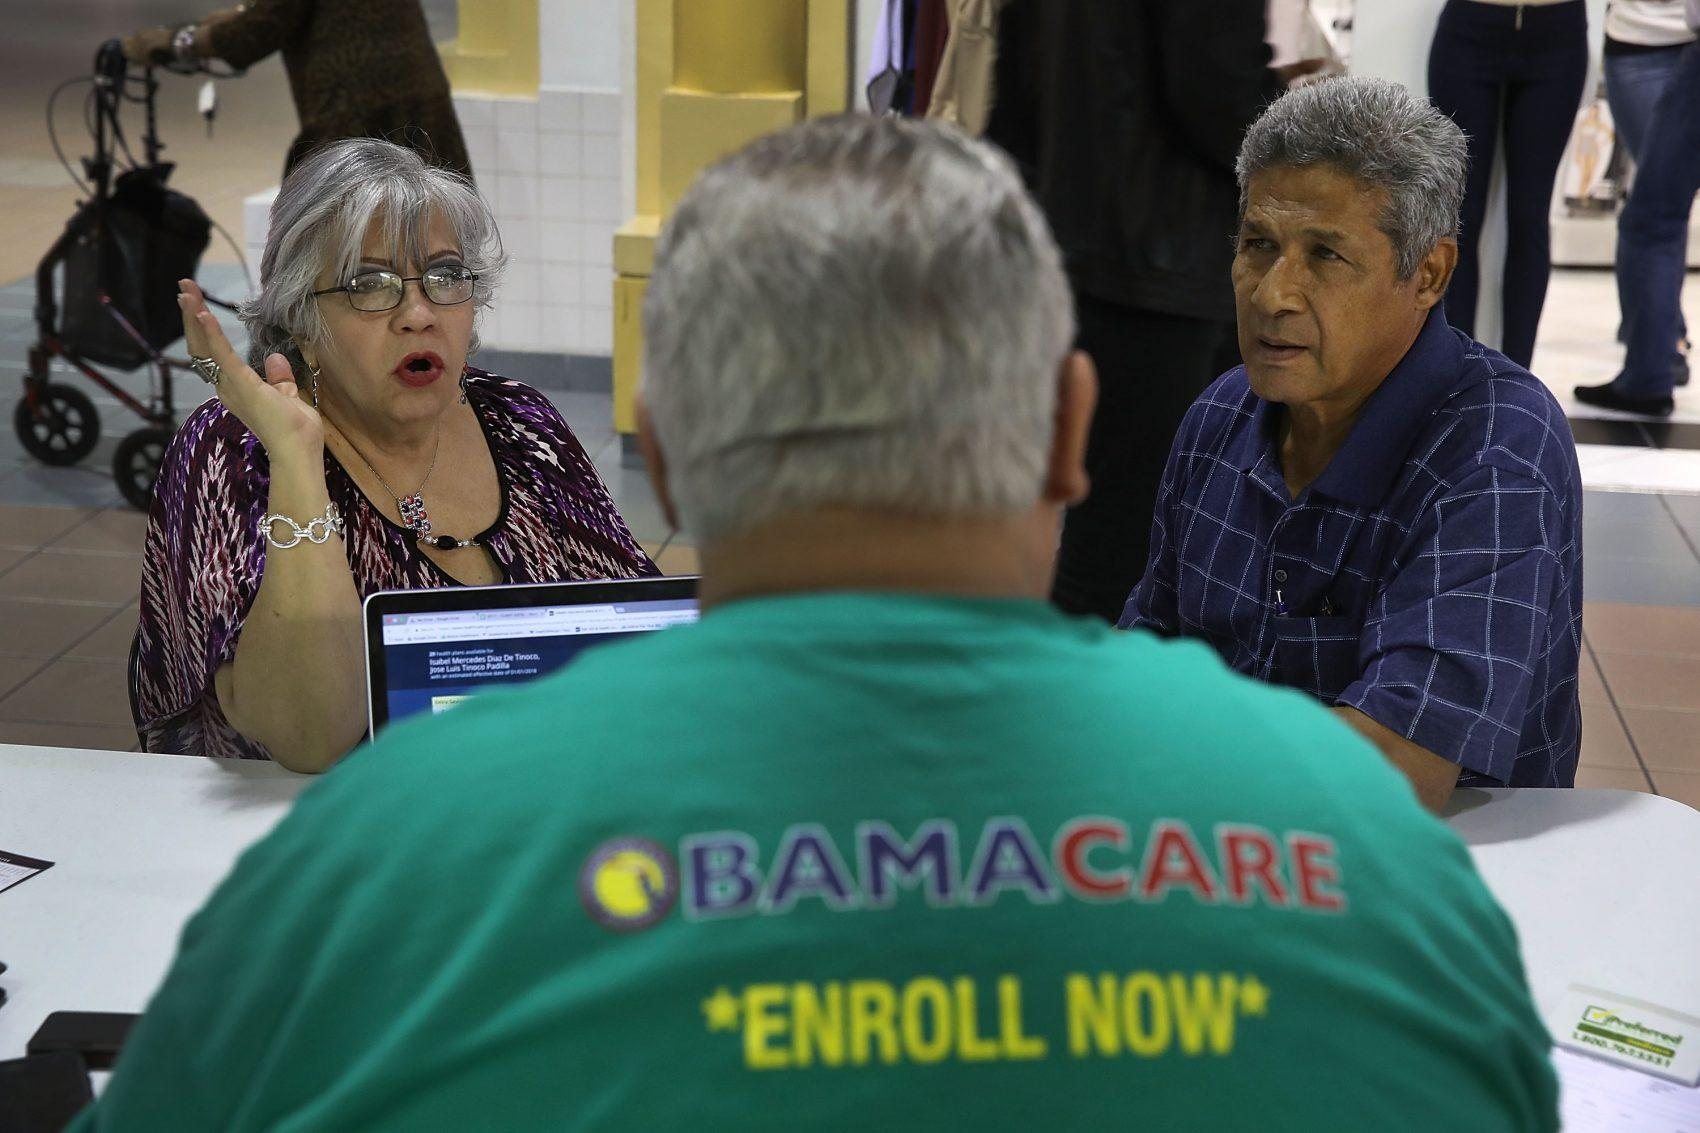 'Obamacare' sees record enrollment in first week